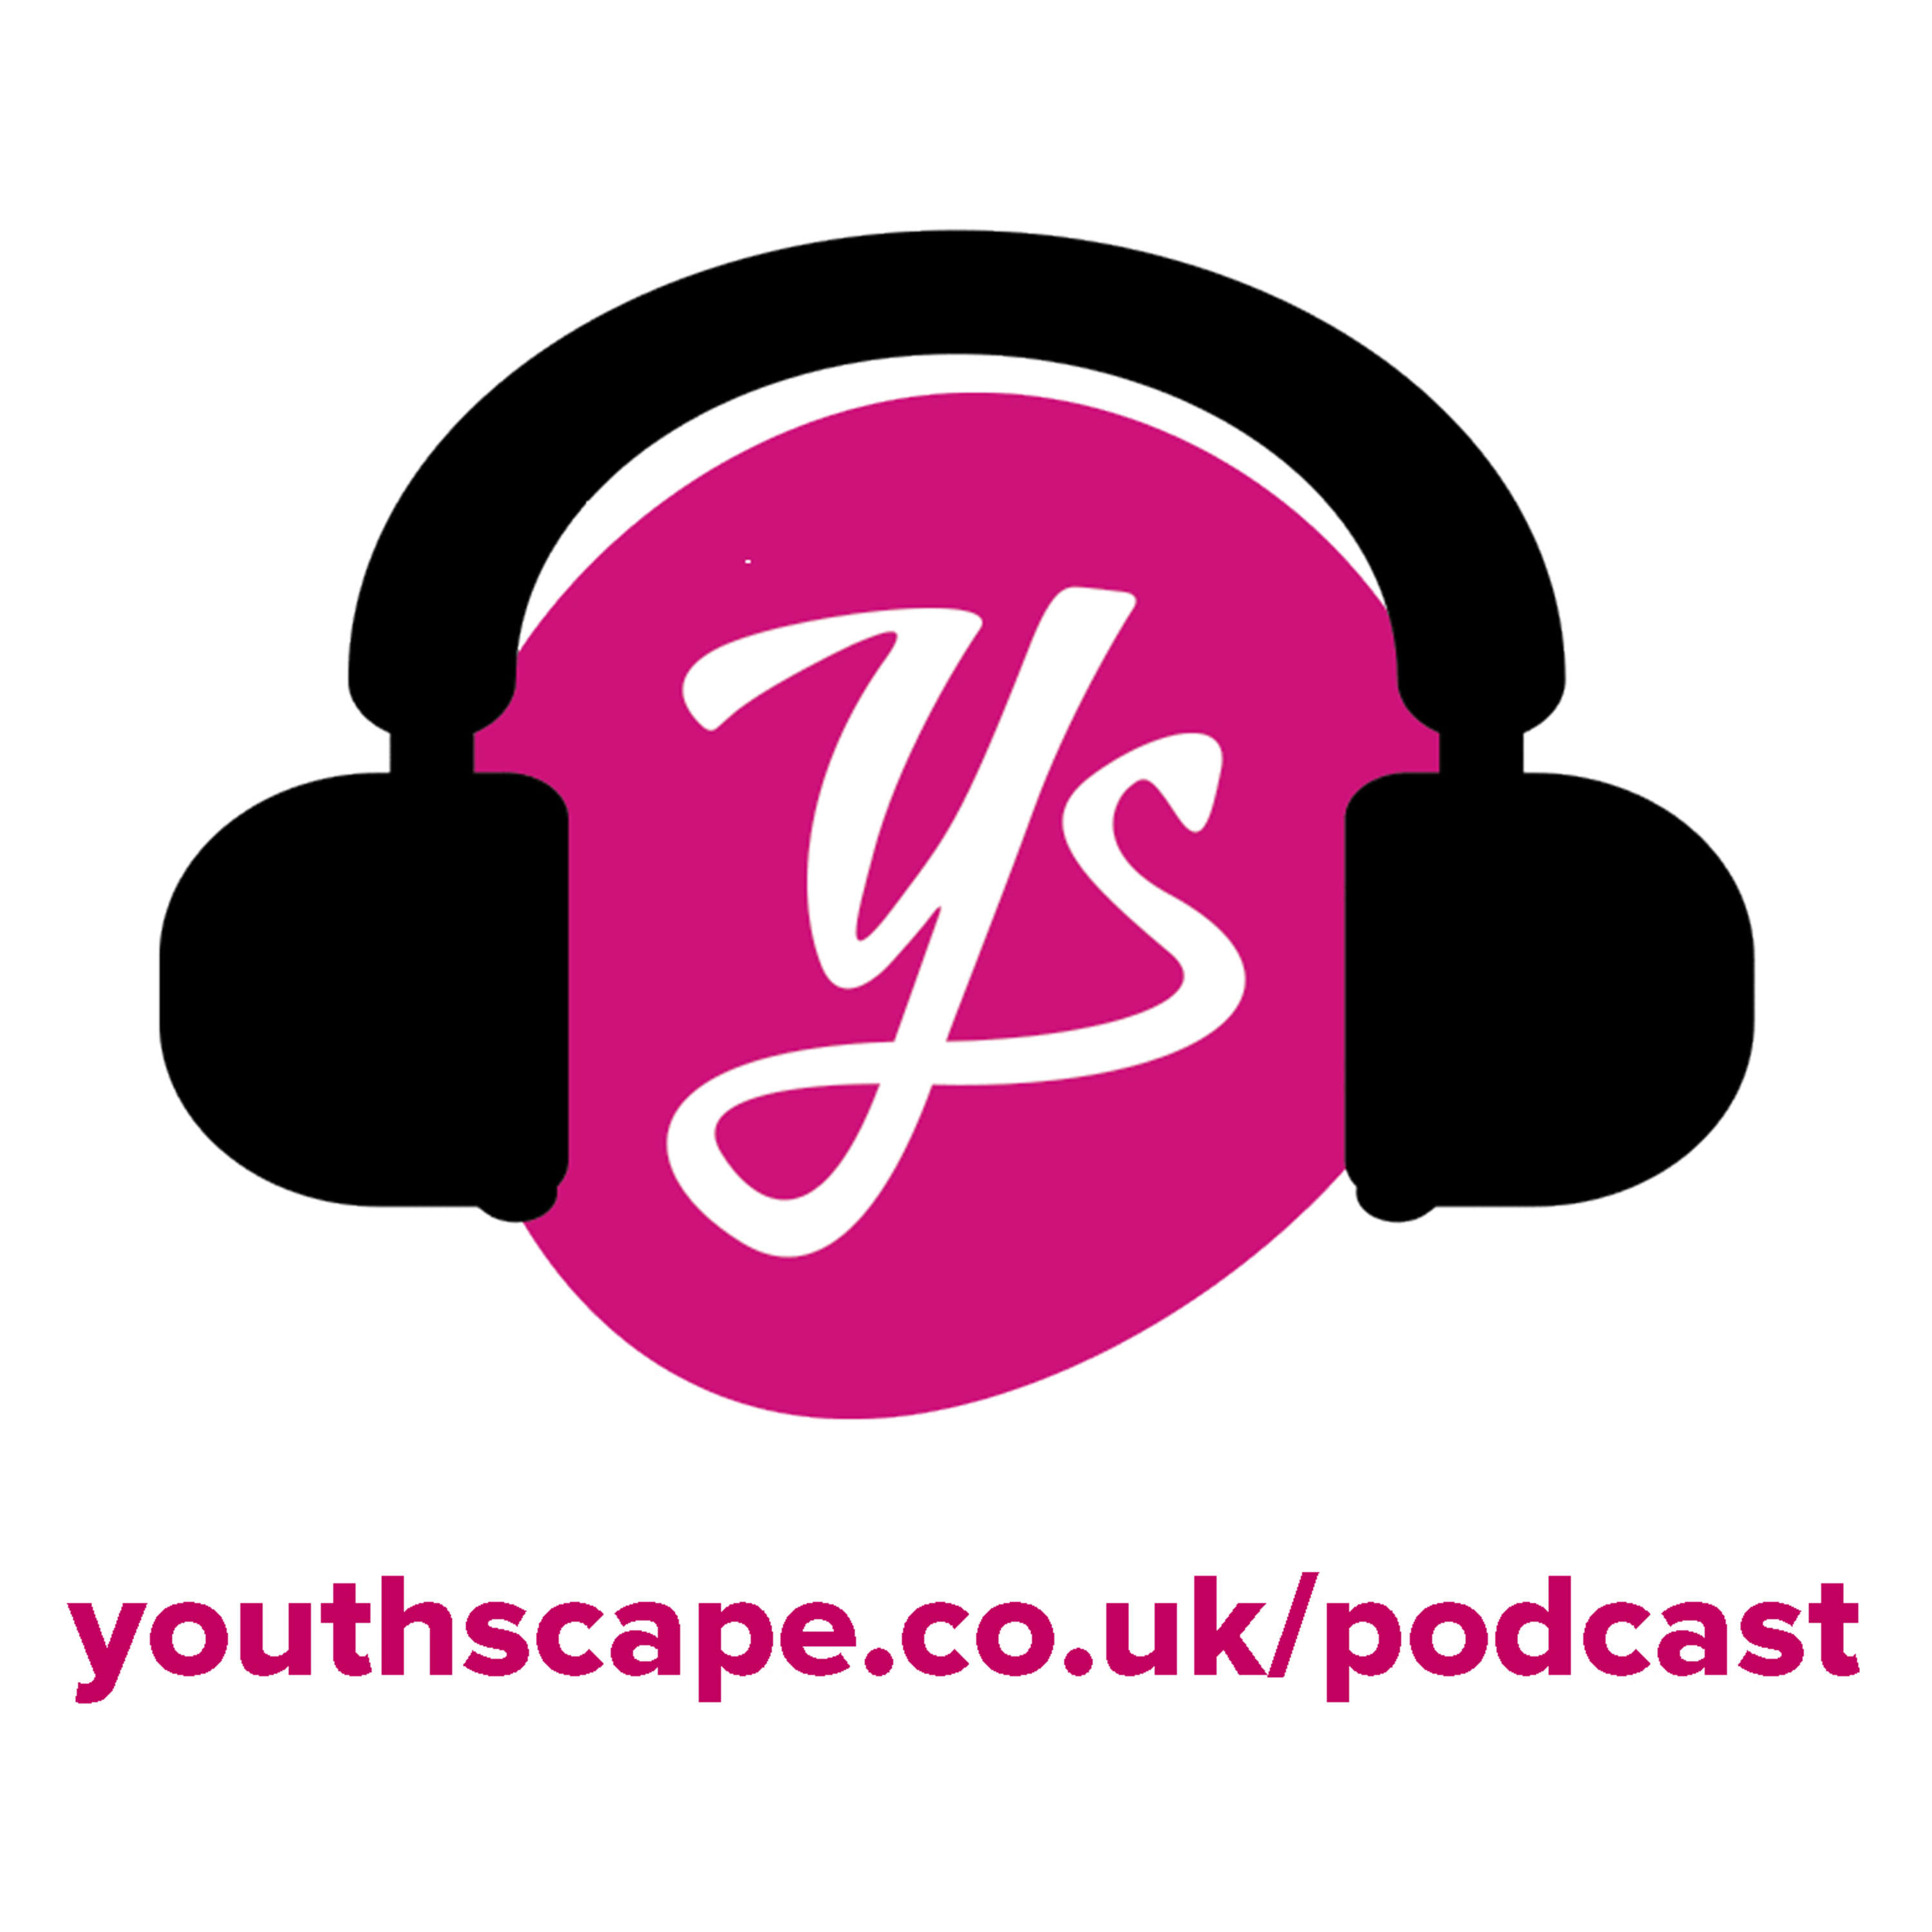 YS 146: Avoiding Coercive Behaviour with Gry Apeland